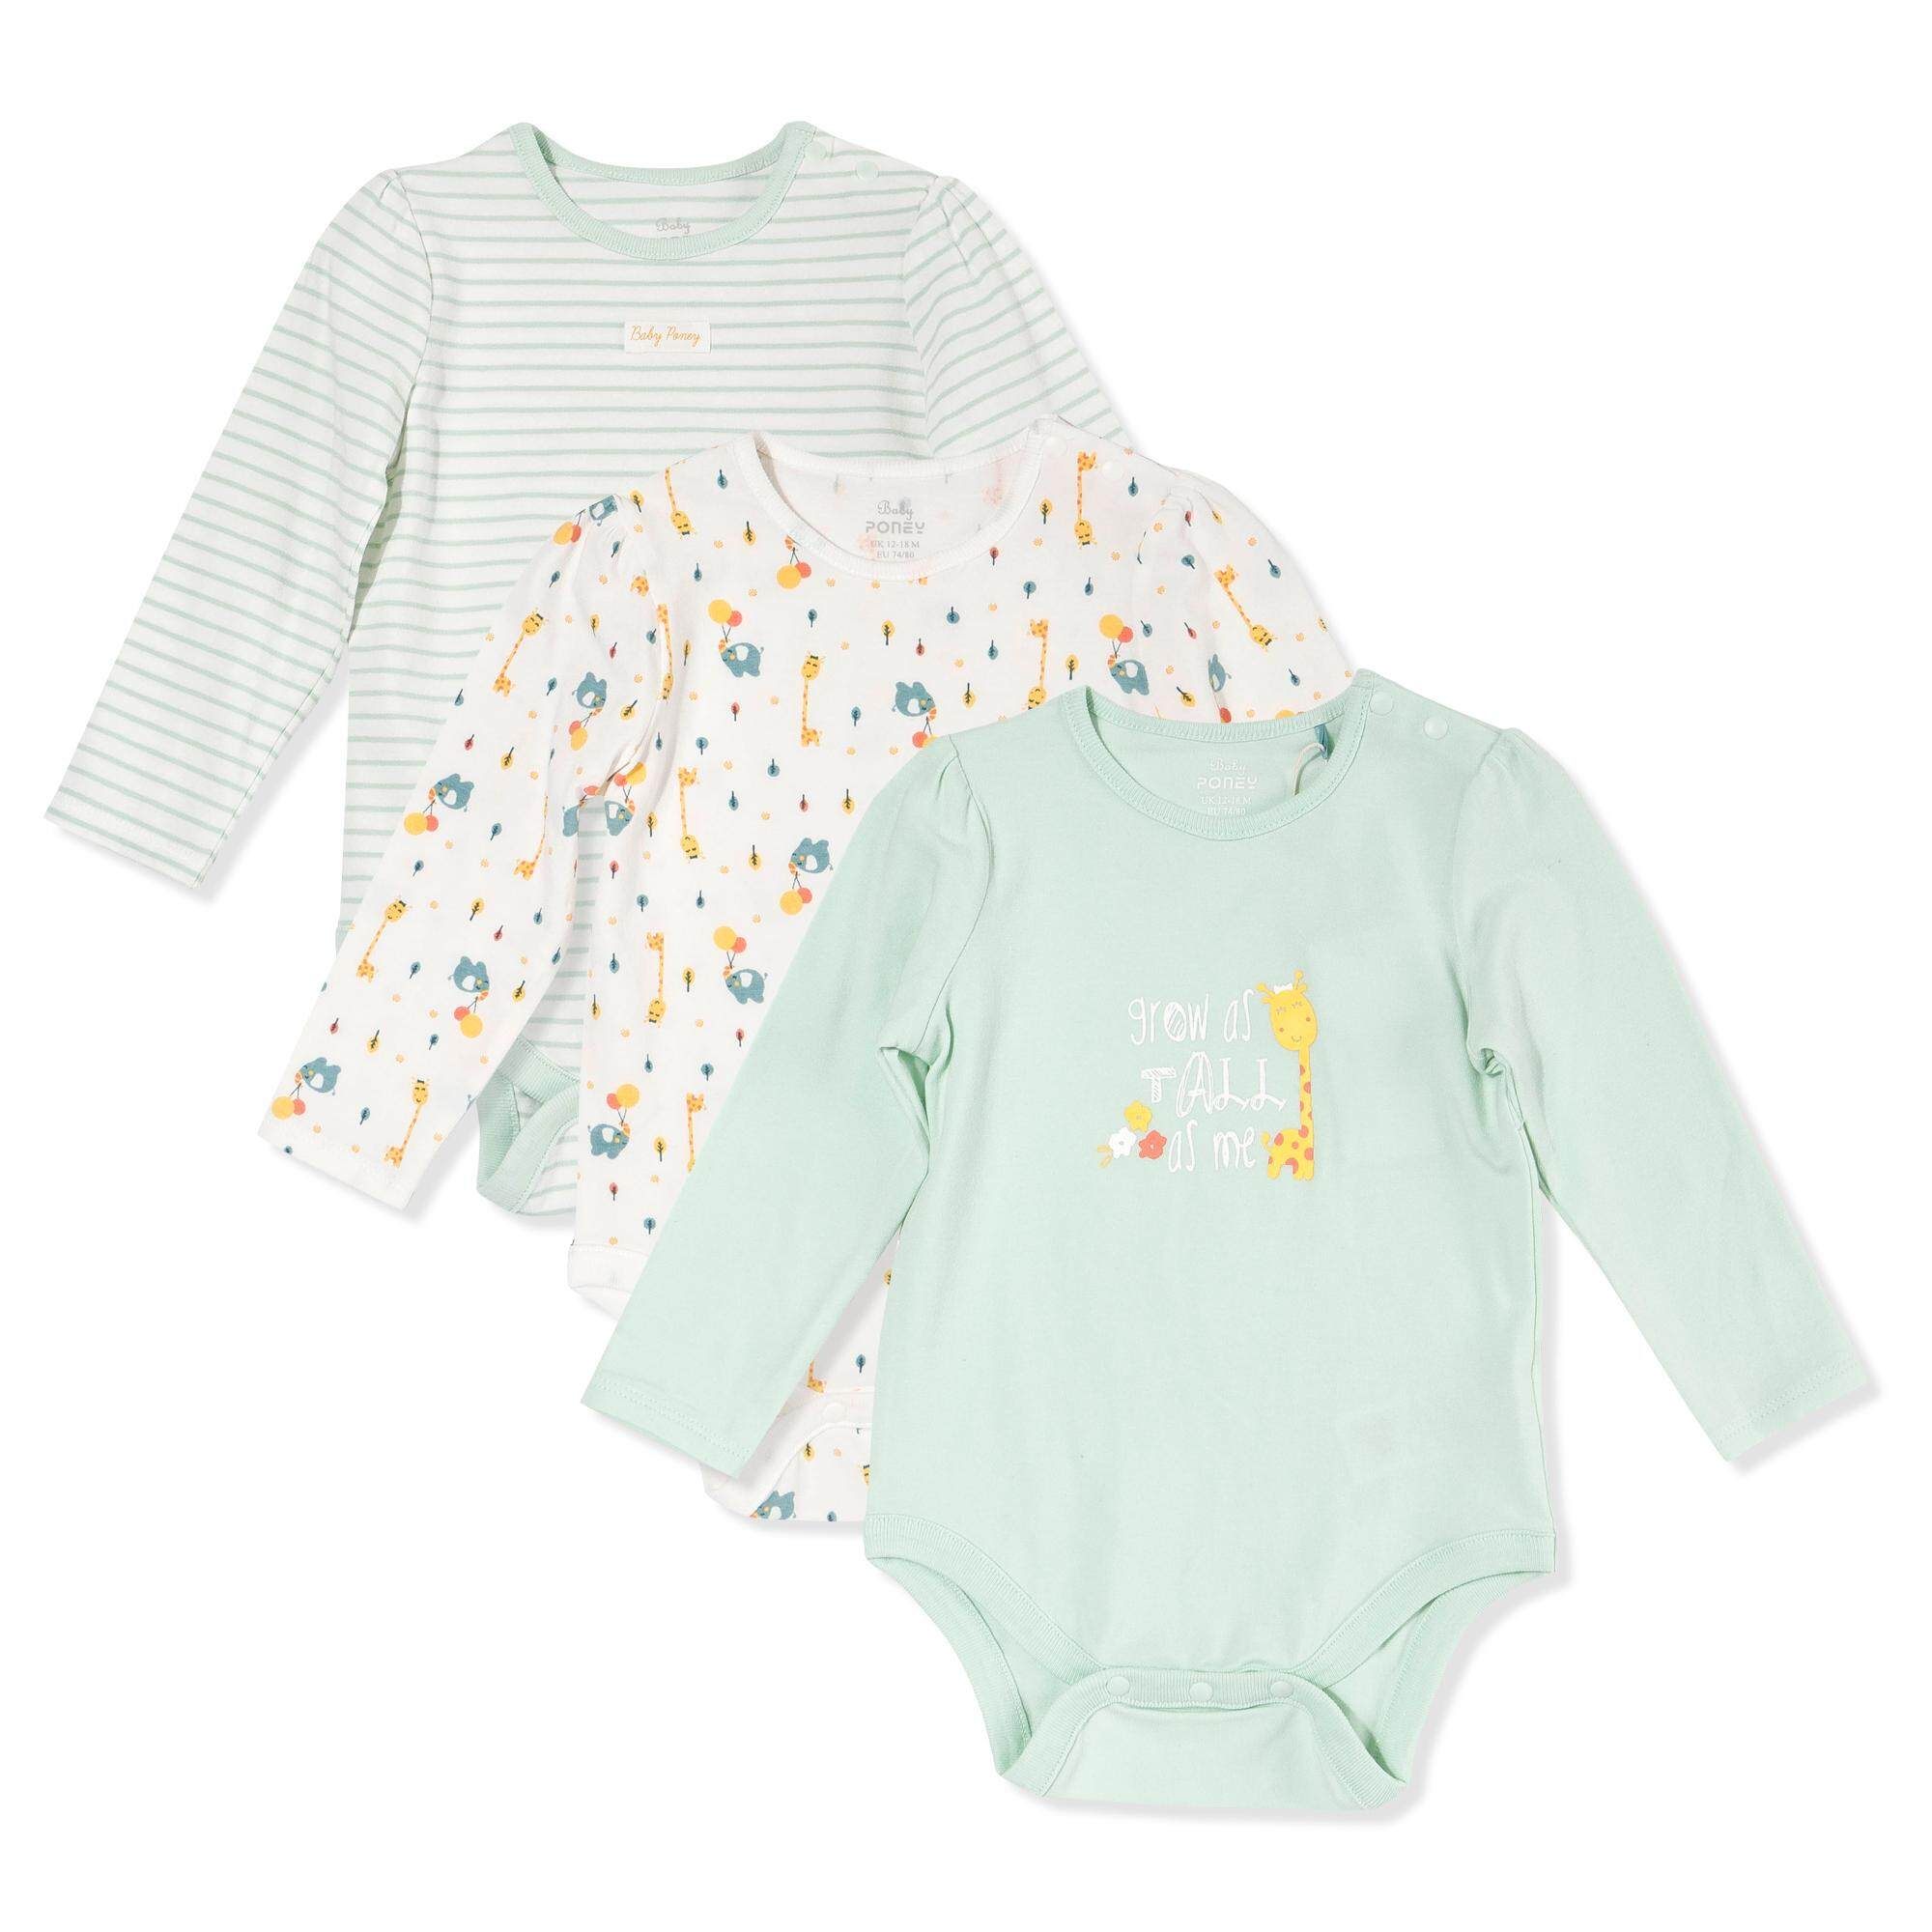 Gentle 0-3 Month Patterned Floral Plain Long Sleeve Bodysuits Soft And Antislippery Clothing, Shoes & Accessories